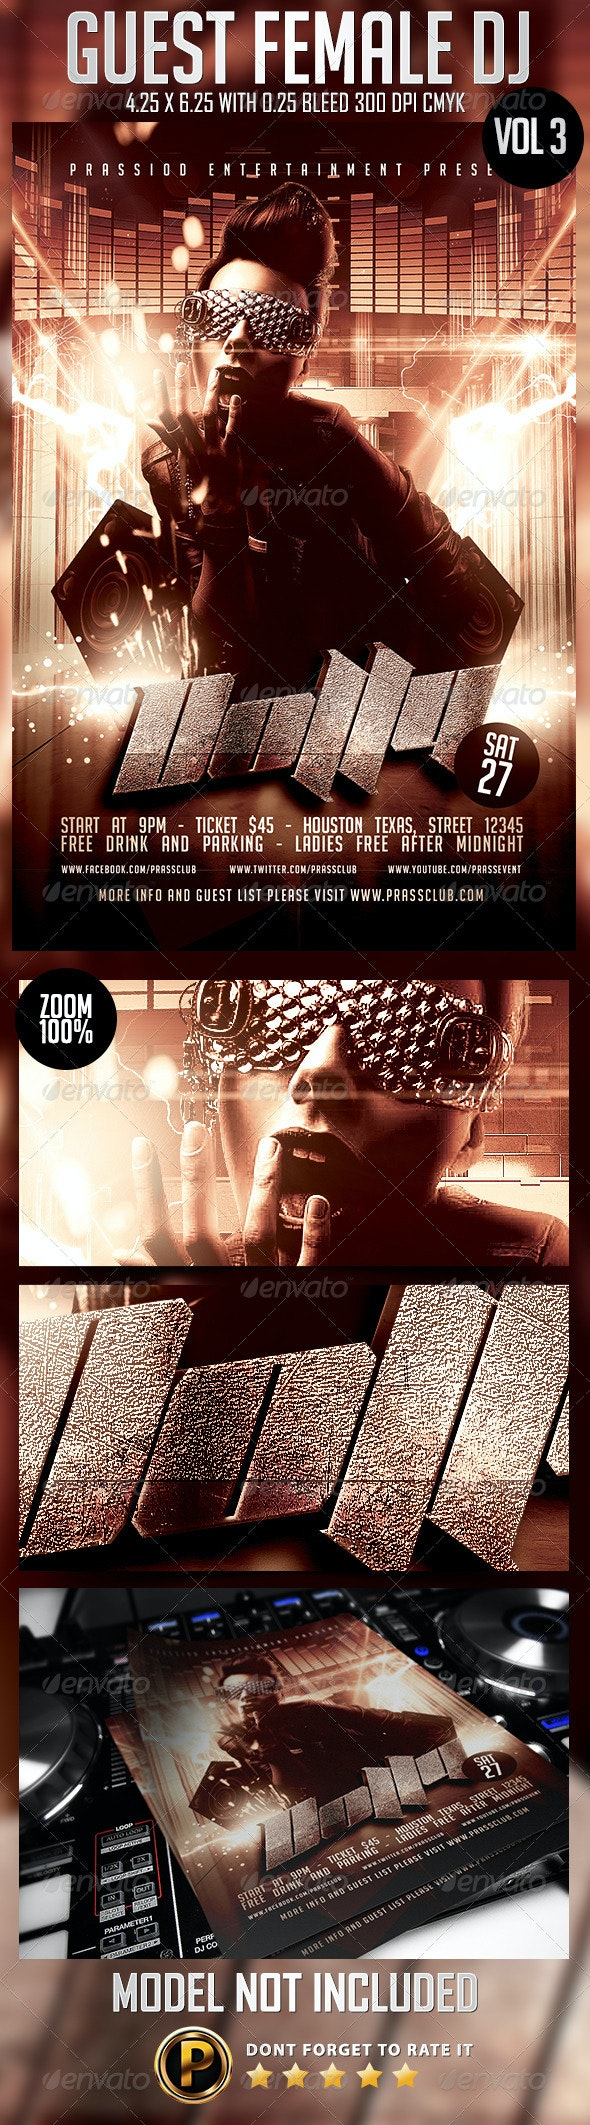 Guest Female DJ Flyer Template Vol 3 - Clubs & Parties Events